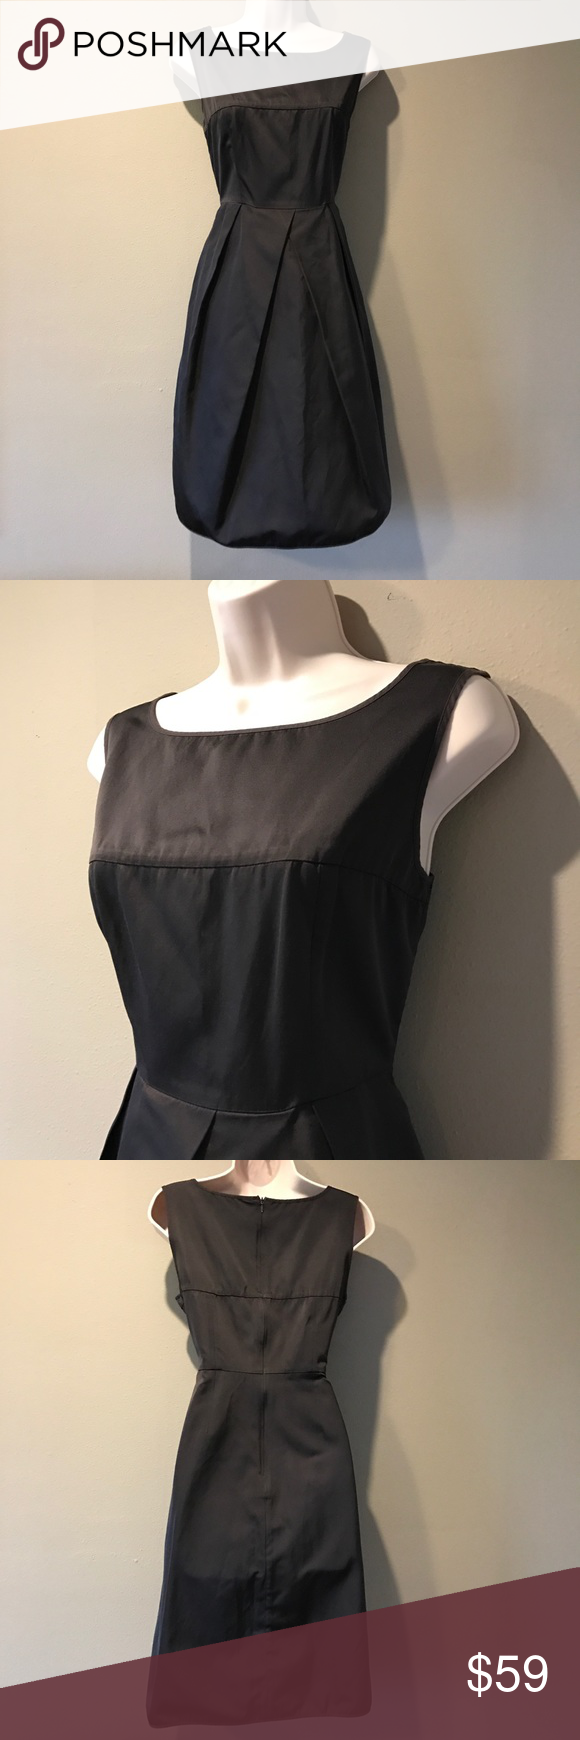 MaxMara Expresso Dress, size 8 Beautifully cut and in excellent preowned condition. Max Mara dark brown A-line skirt dress. Size is 8 MaxMara Dresses